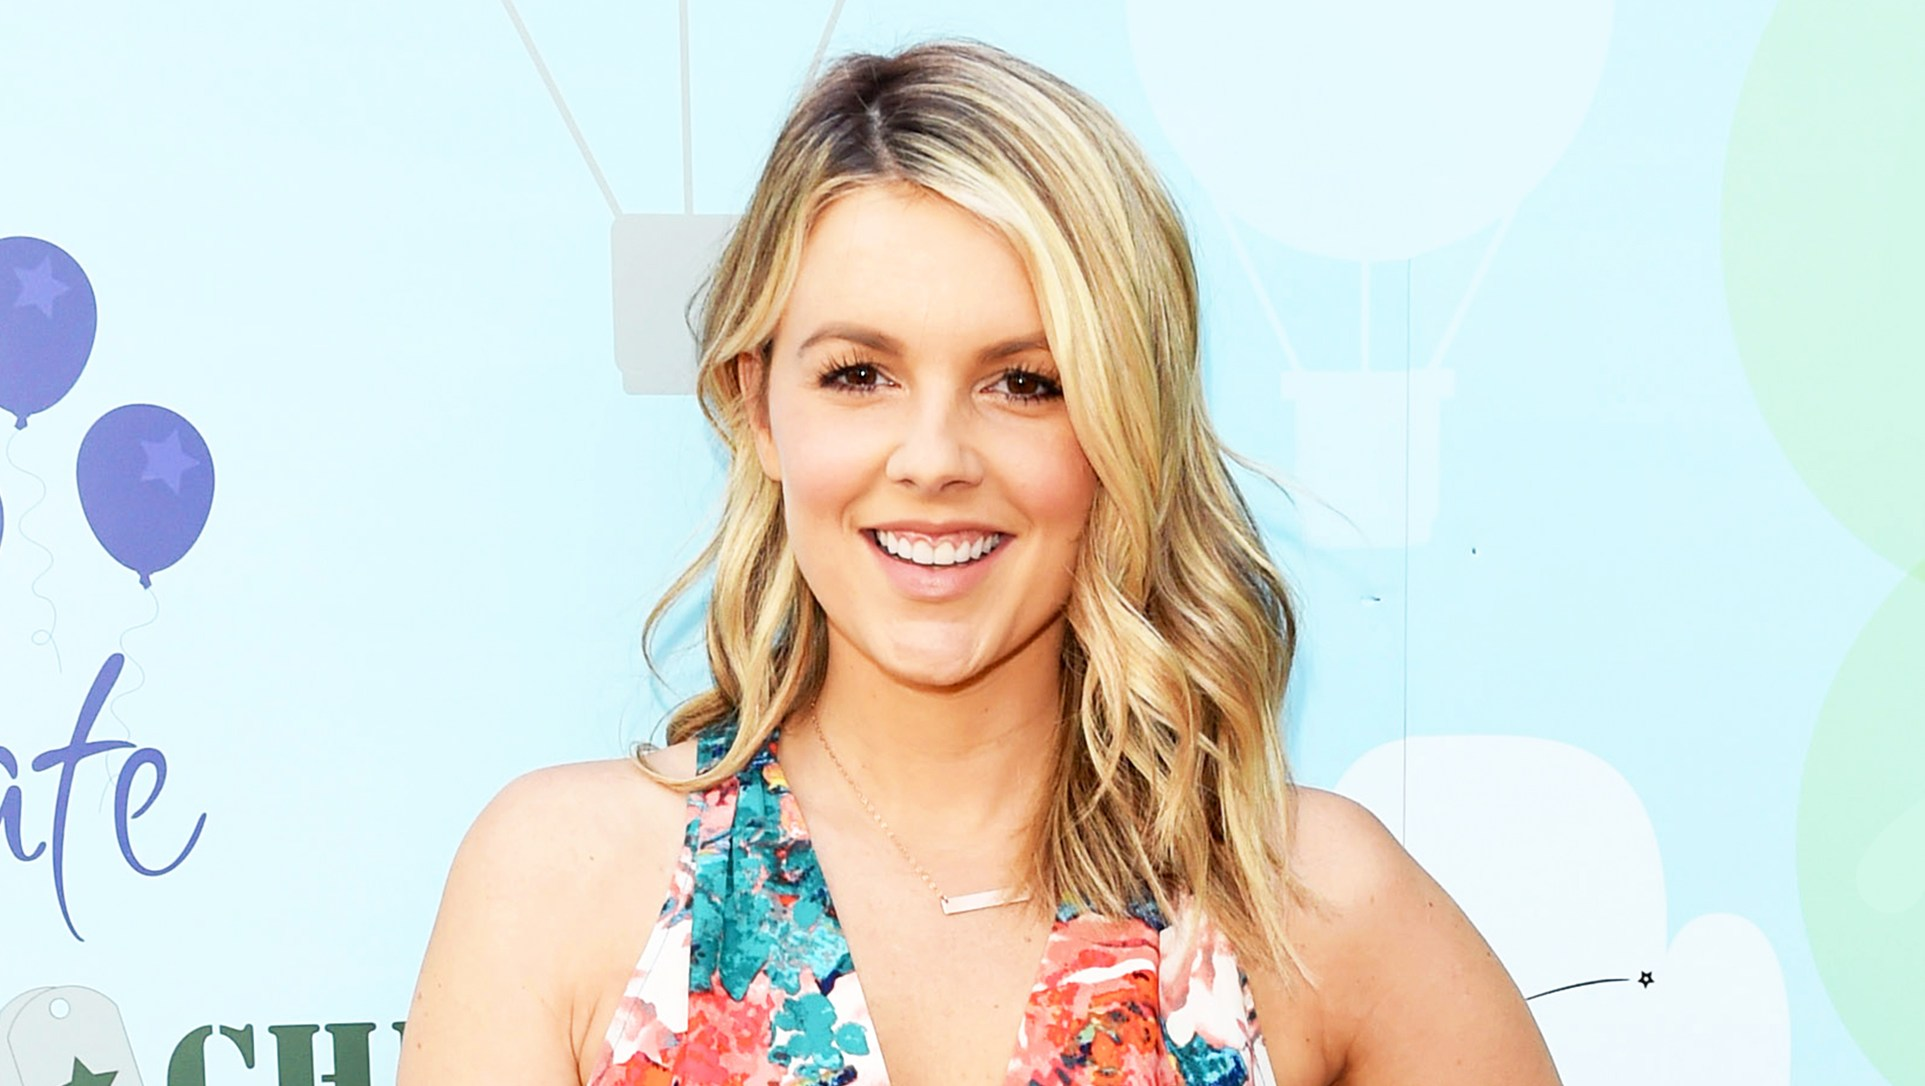 Ali Fedotowsky attends the Step2 & Favoredby Present The 5th Annual Red Carpet Safety Awareness Event at Sony Pictures Studios in Culver City, California.